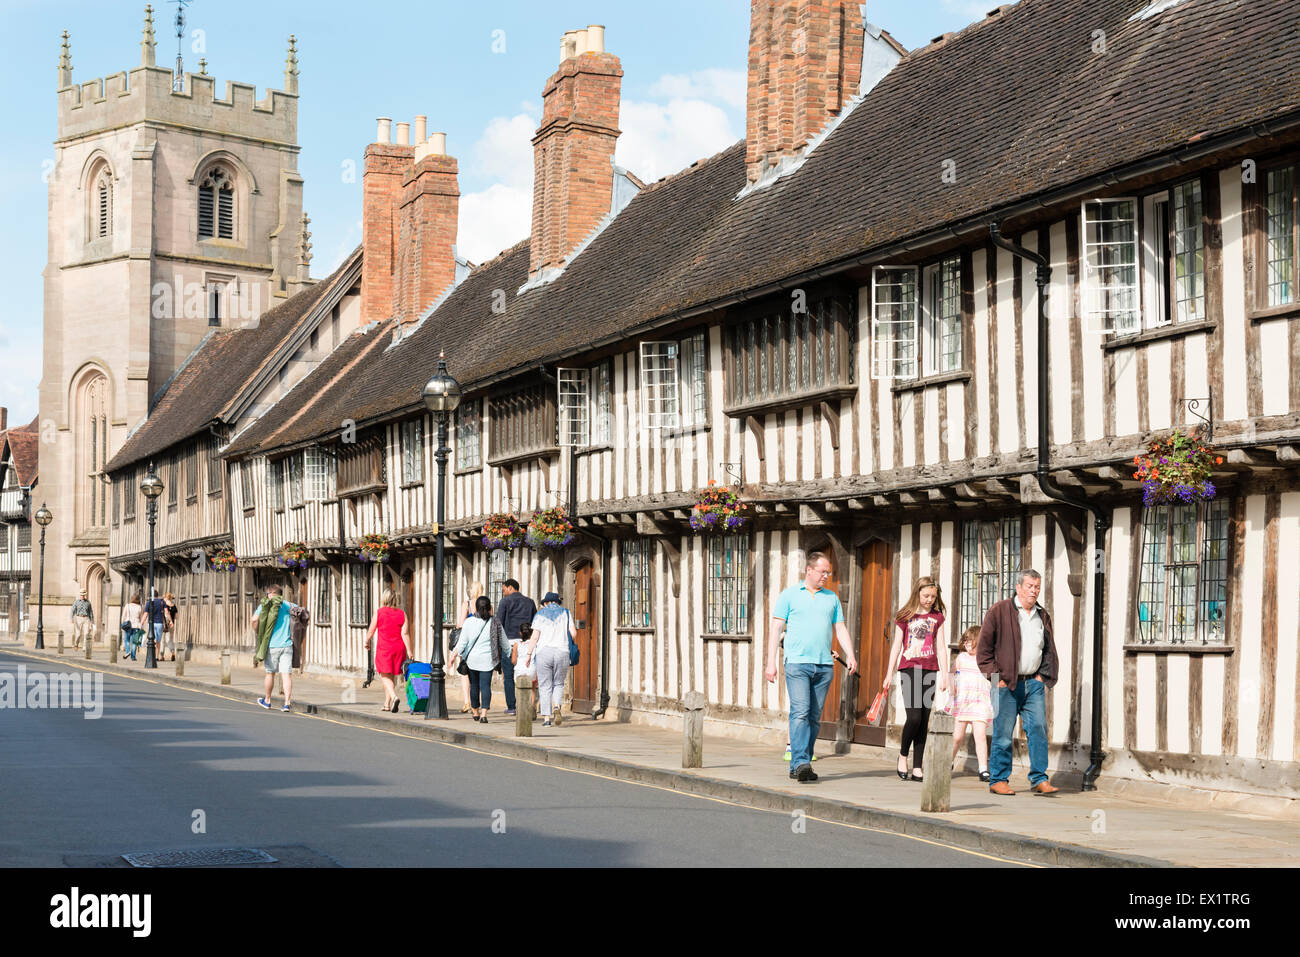 Old buildings in Church Street, Stratford upon Avon, UK. - Stock Image